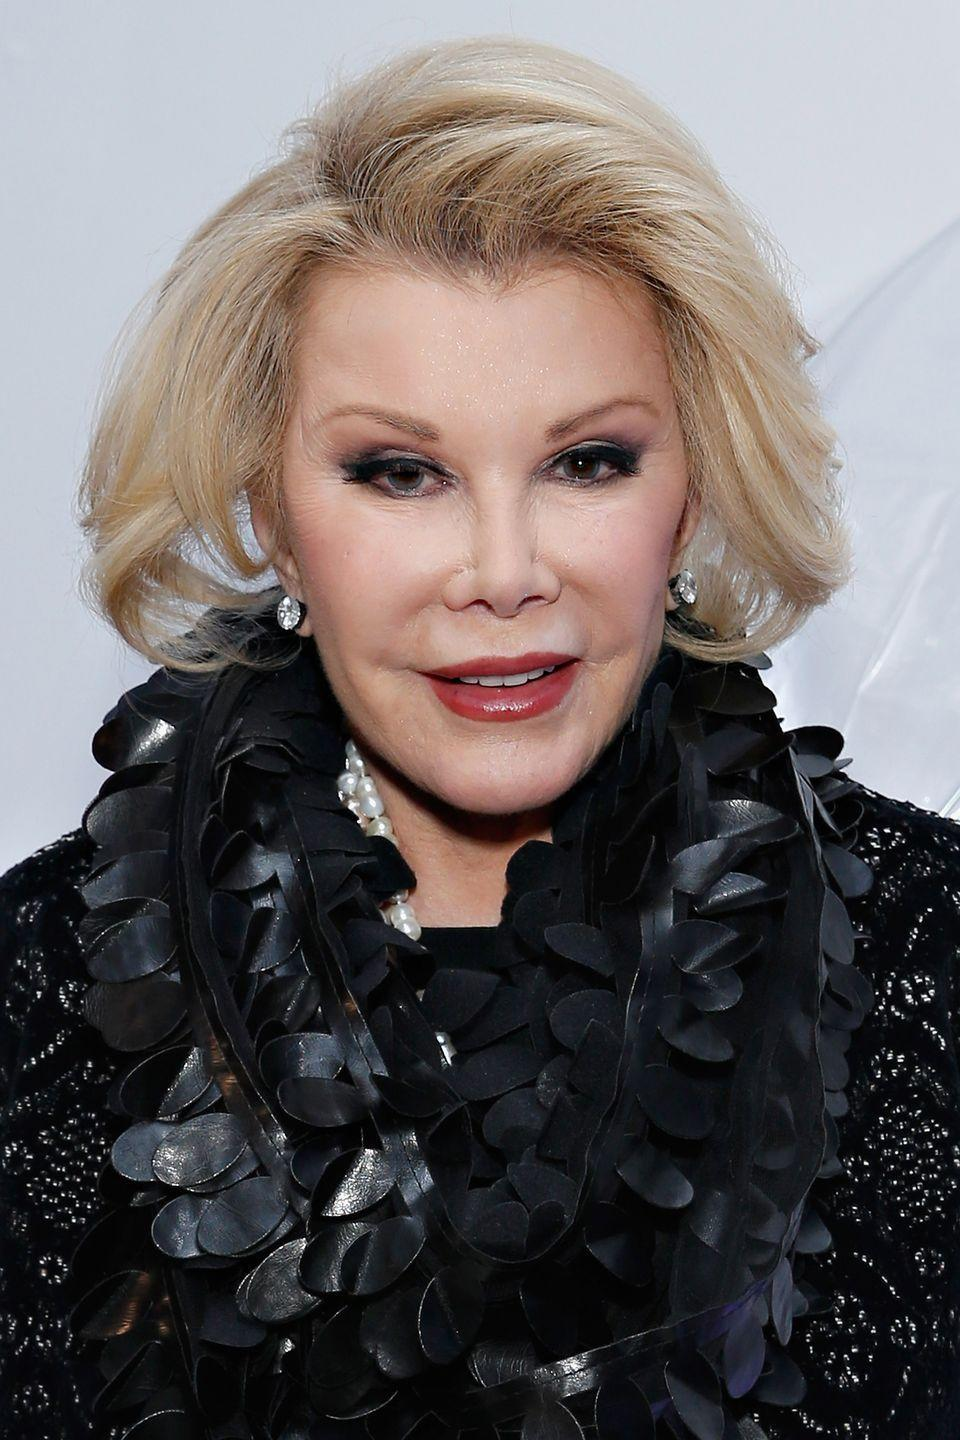 """<p>Joan Rivers was the queen of plastic surgeries, most of which she loved. But the late comedian said she didn't like the results of her liposuction. 'I didn't check out the doctor and the result wasn't smooth,' <a href=""""https://www.slice.ca/beauty/photos/stars-who-regret-their-plastic-surgery/#!celebs-plastic-surgery-regrets-joan-rivers"""" rel=""""nofollow noopener"""" target=""""_blank"""" data-ylk=""""slk:she said"""" class=""""link rapid-noclick-resp"""">she said</a>.</p>"""